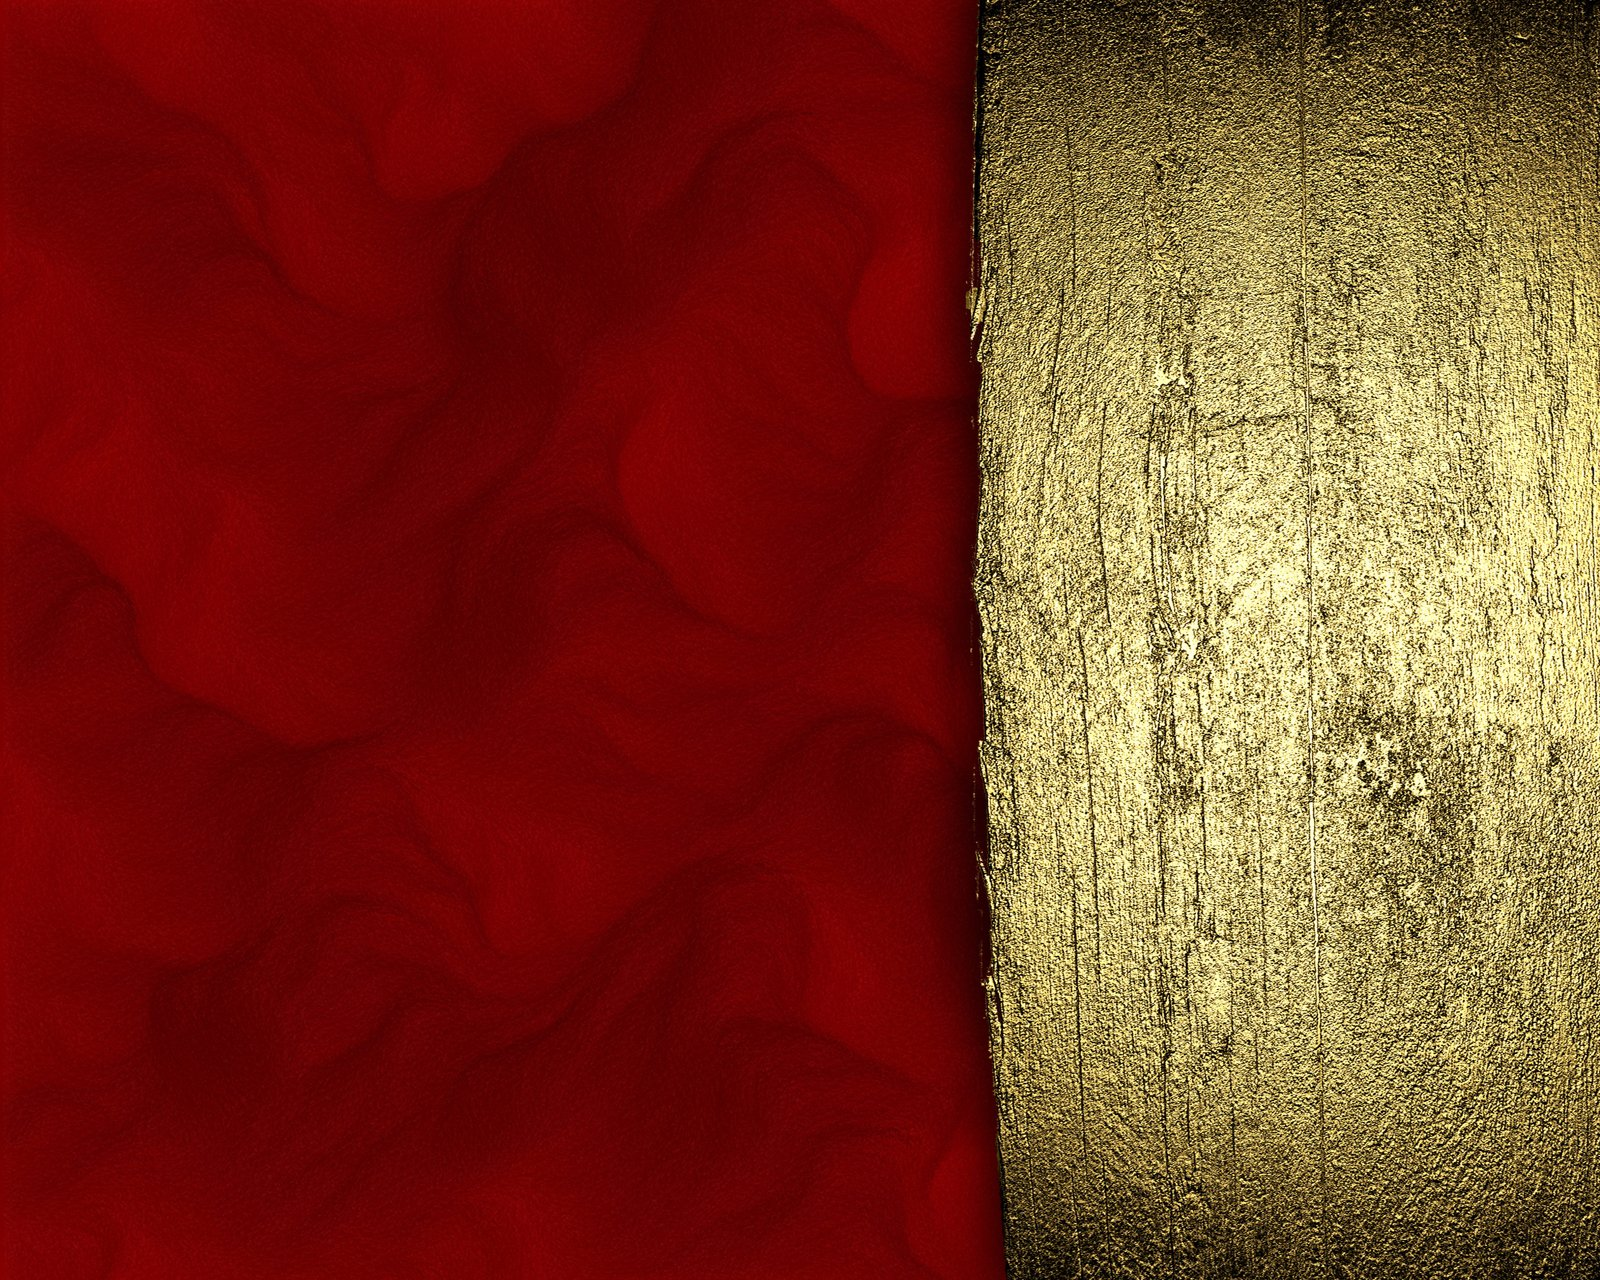 Maroon And Gold Design Backgrounds For PowerPoint   Colors PPT 1600x1280